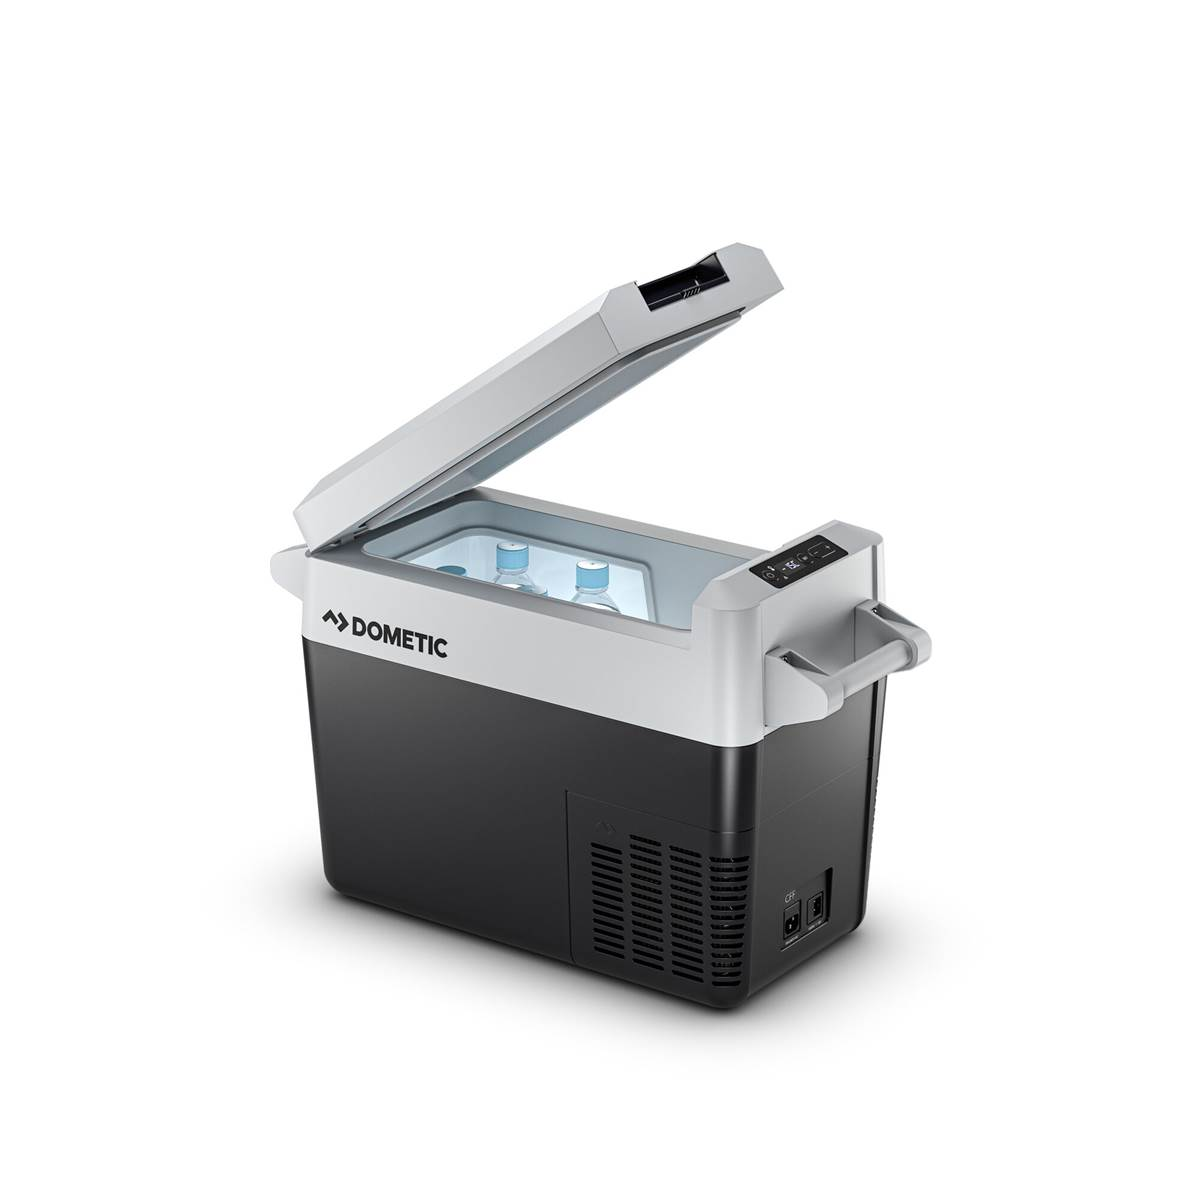 glacière portable à compression coolfreeze cdf-26 dometic